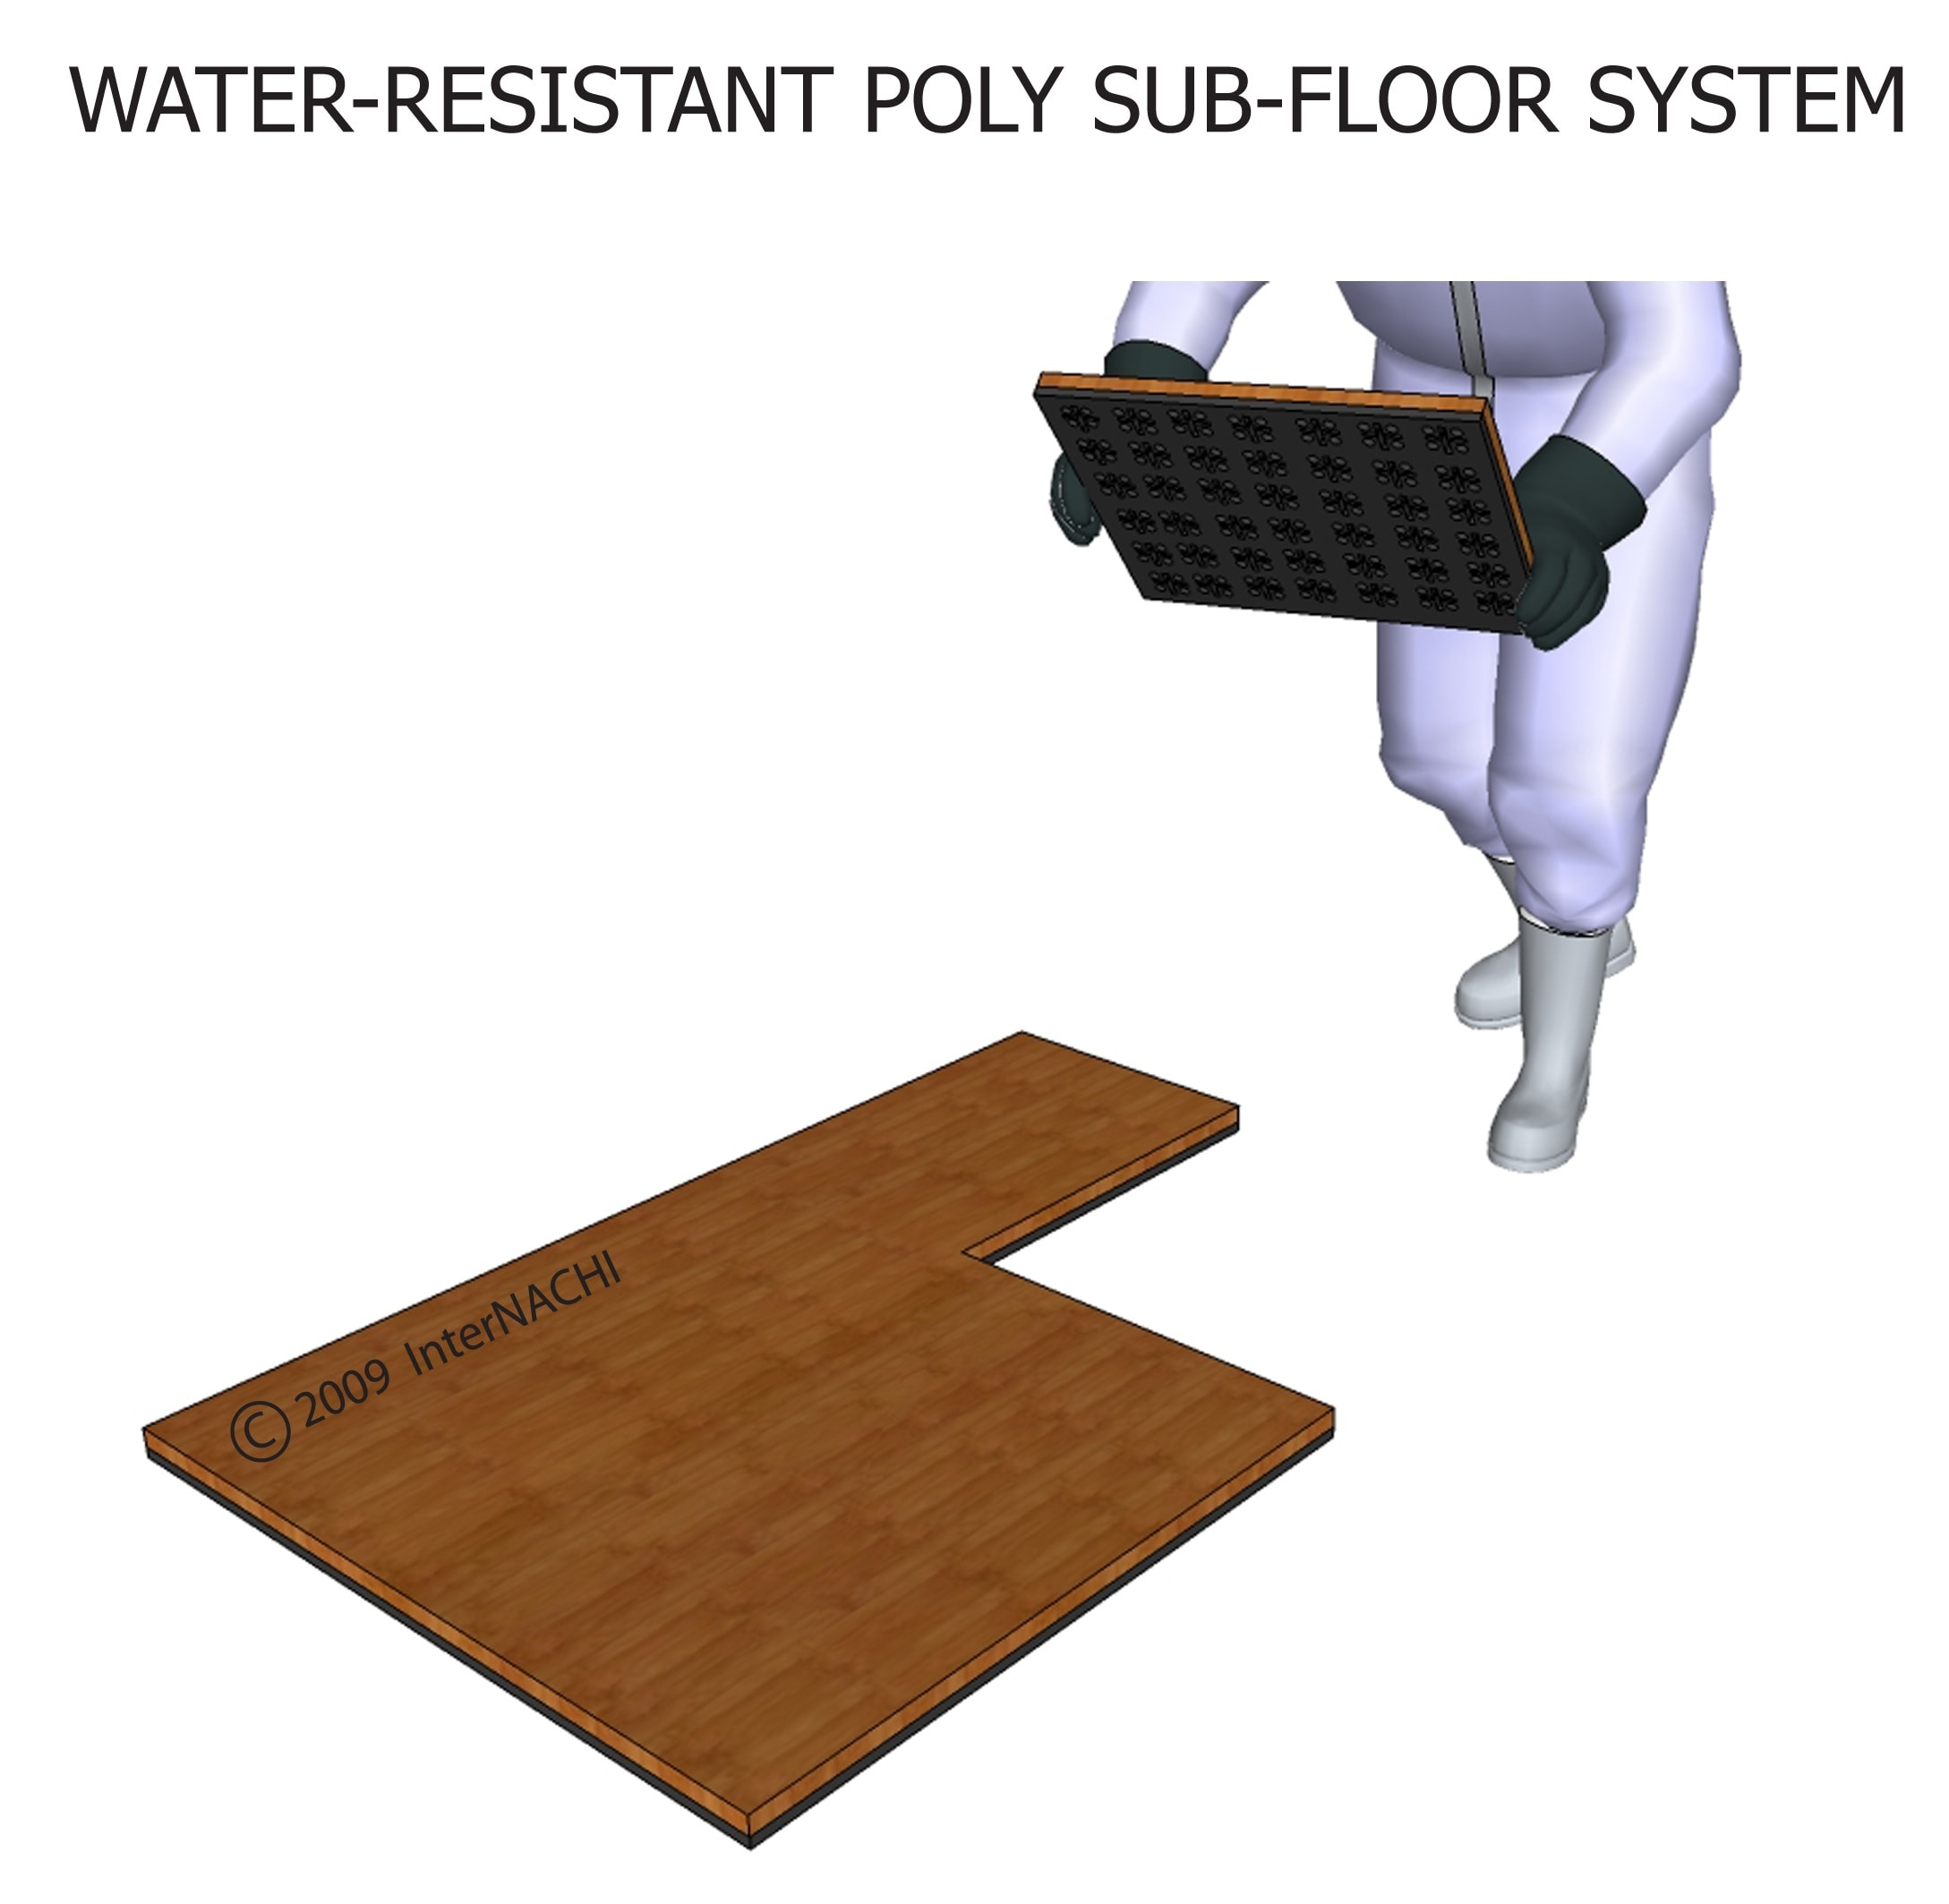 Water-resistant poly sub-floor system.